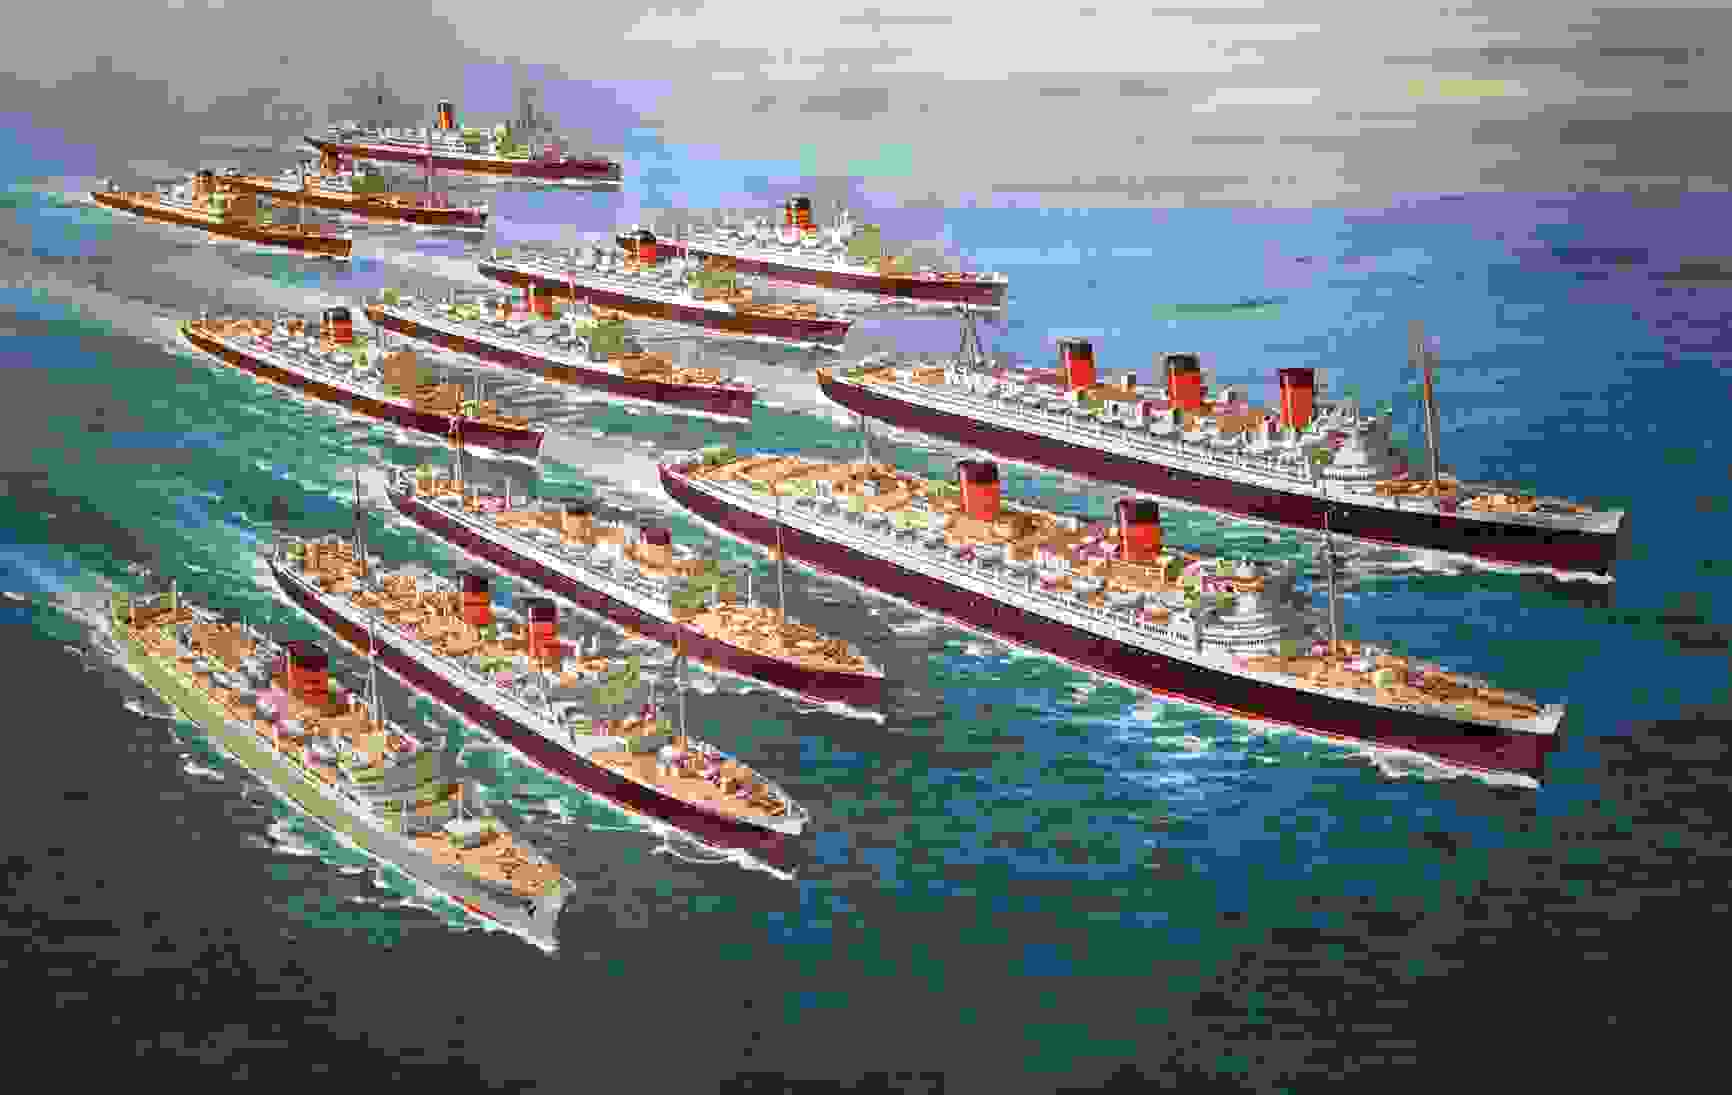 painting_of_fleet_of_liners